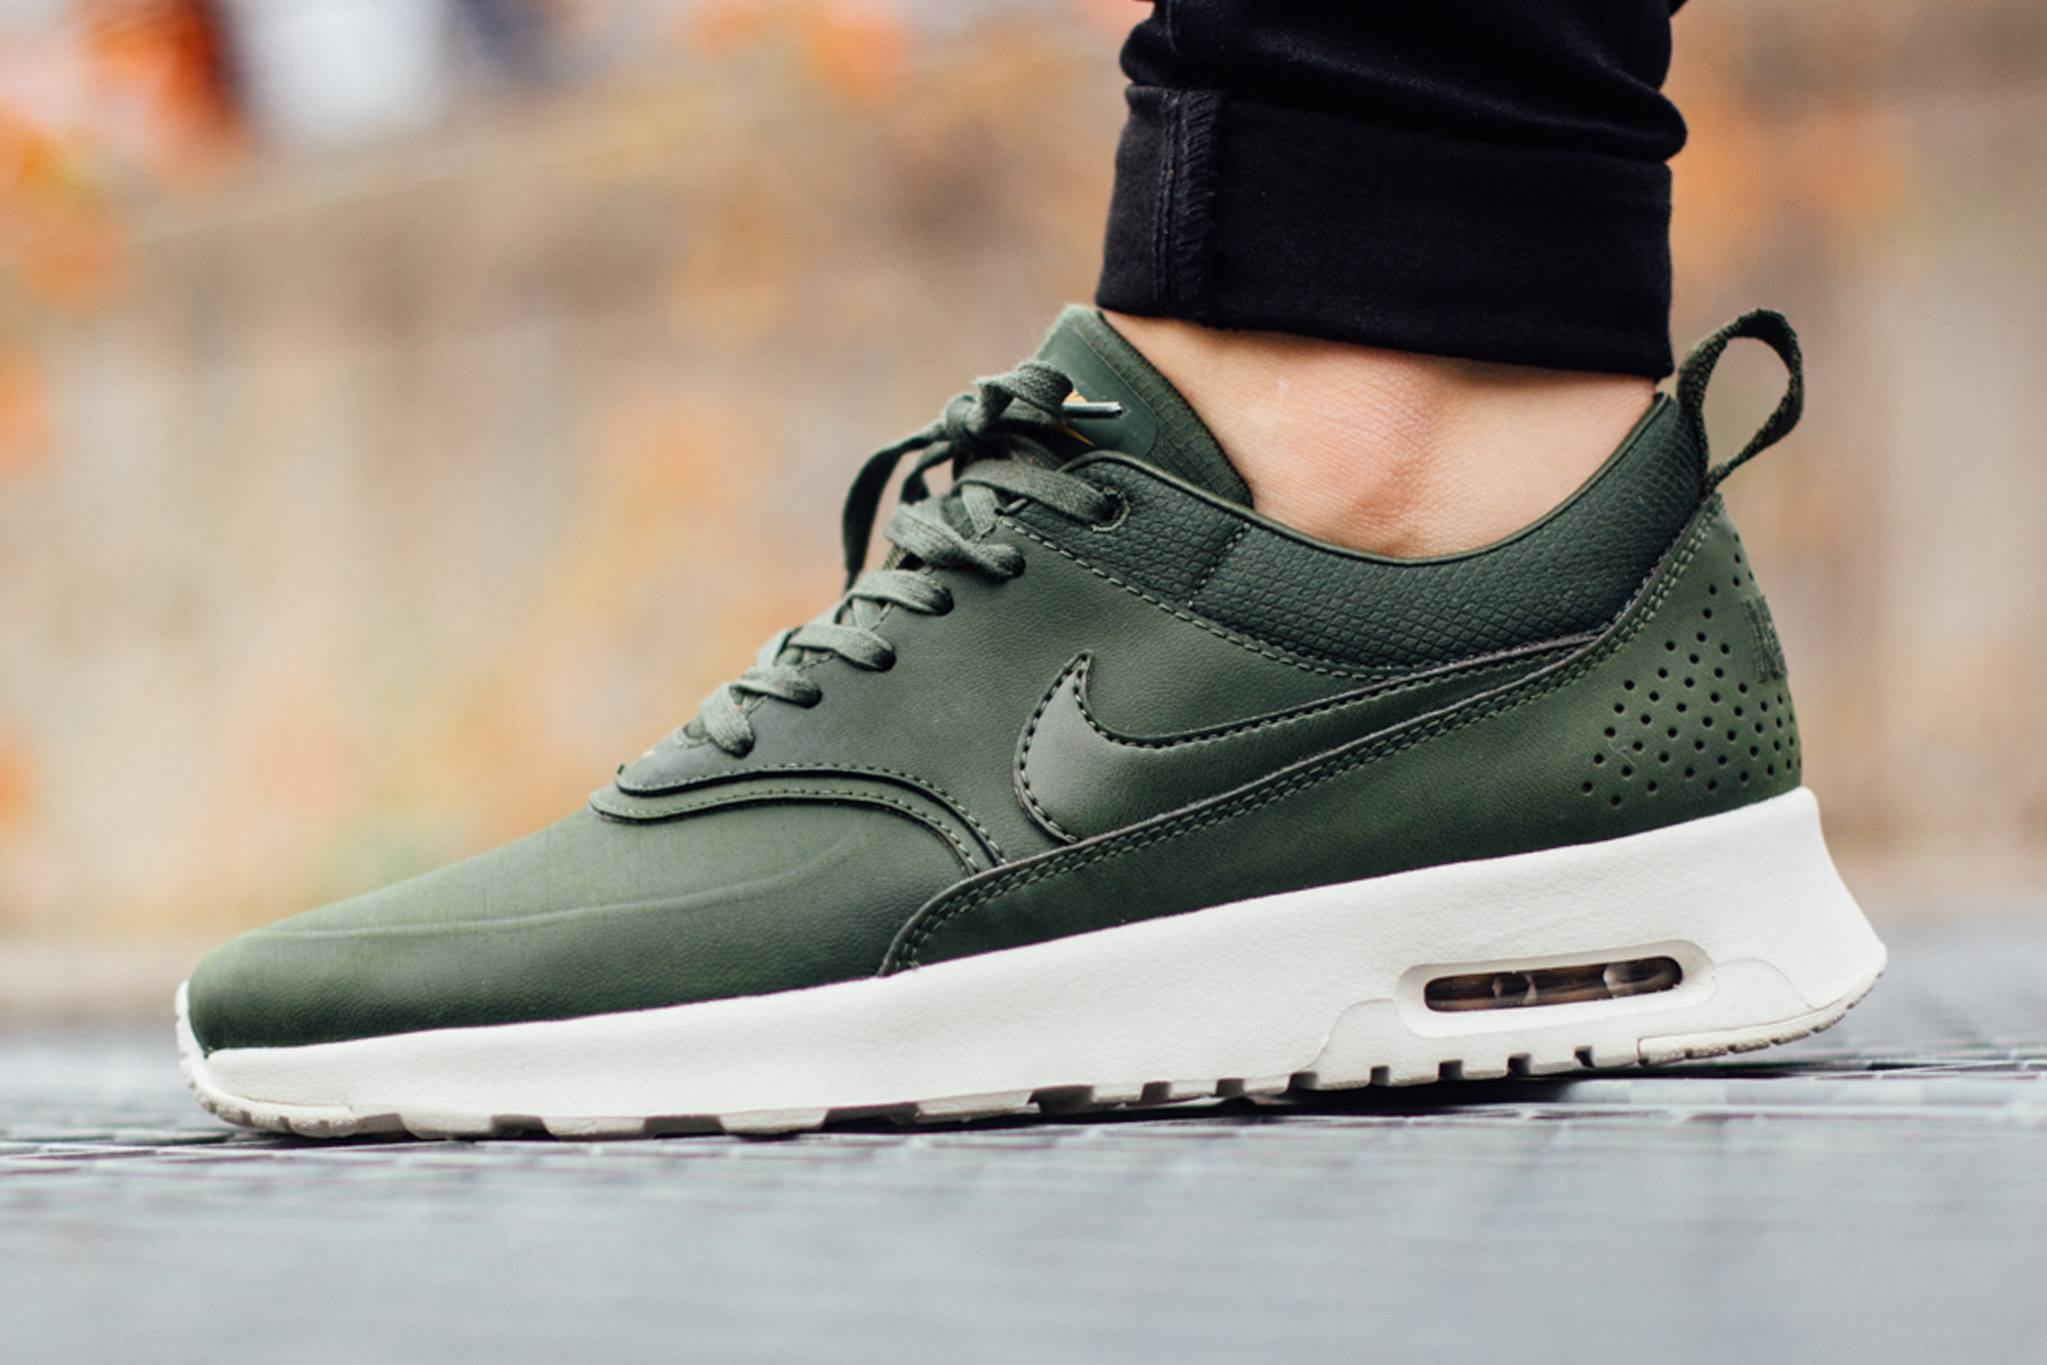 taille 40 40523 7473f Carbon Green Covers this Nike Air Max Thea • KicksOnFire.com